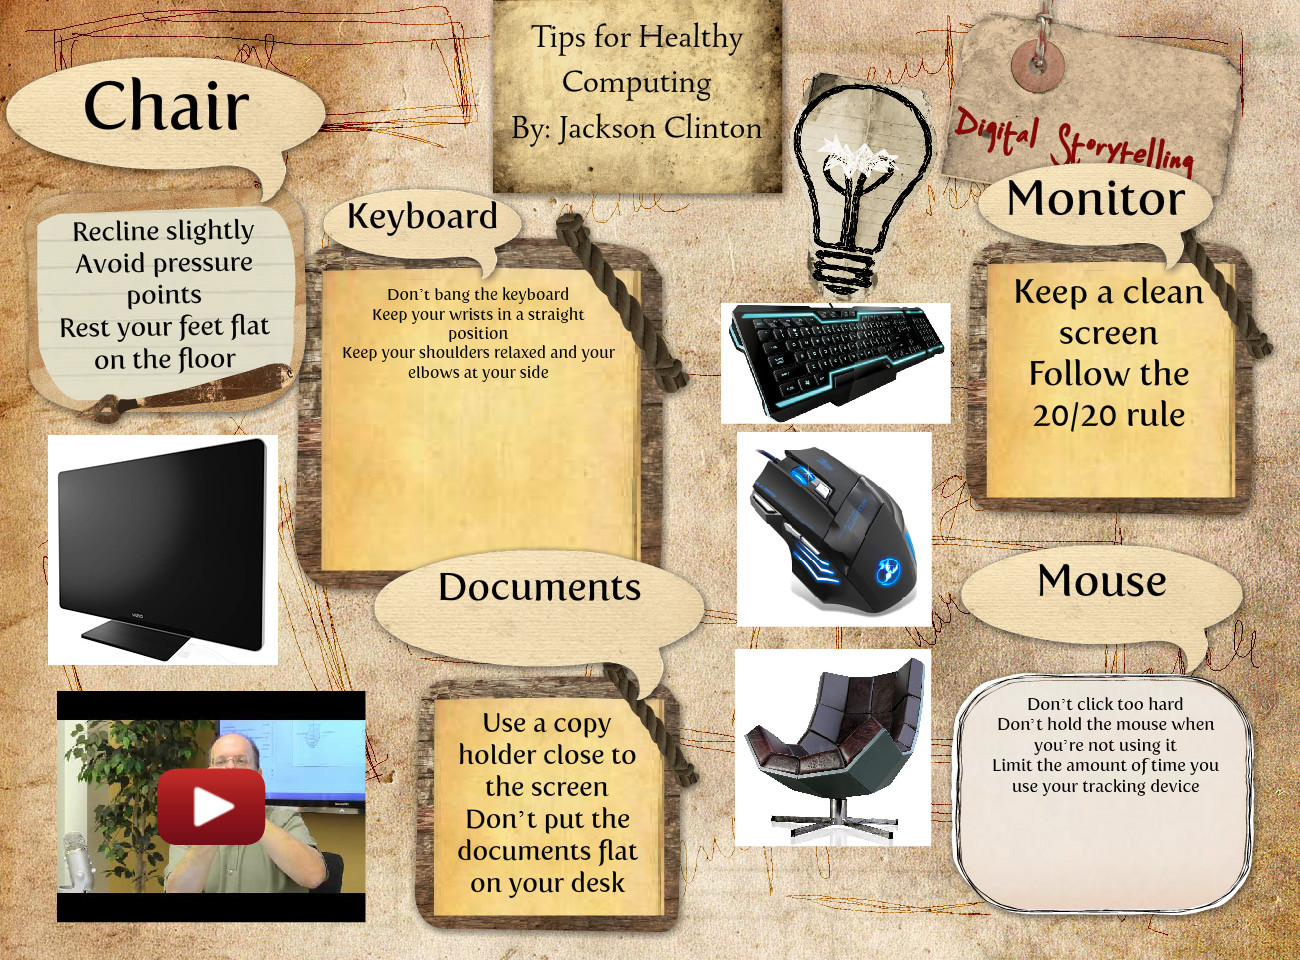 Tips for healthy computing